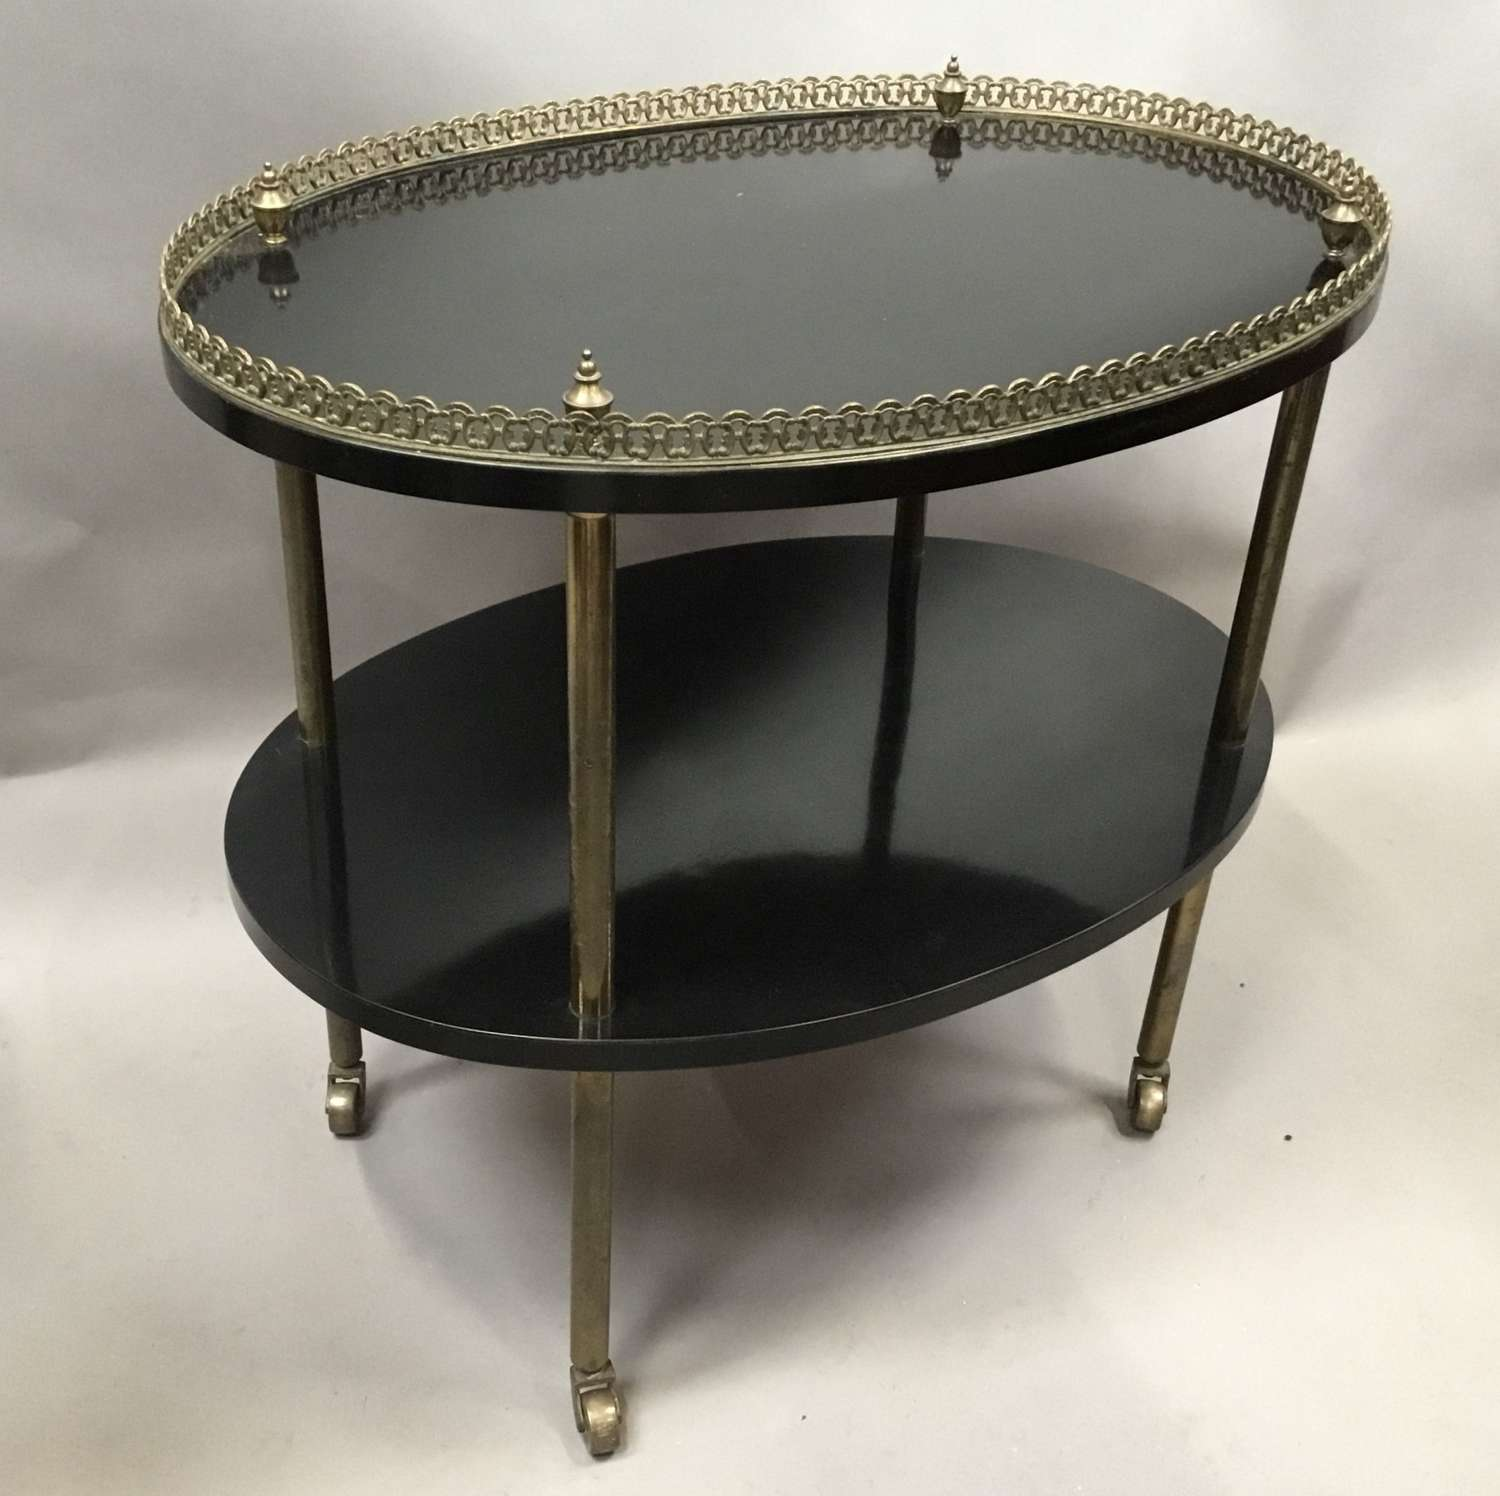 Early C20th ebonised and gilt brass etagere